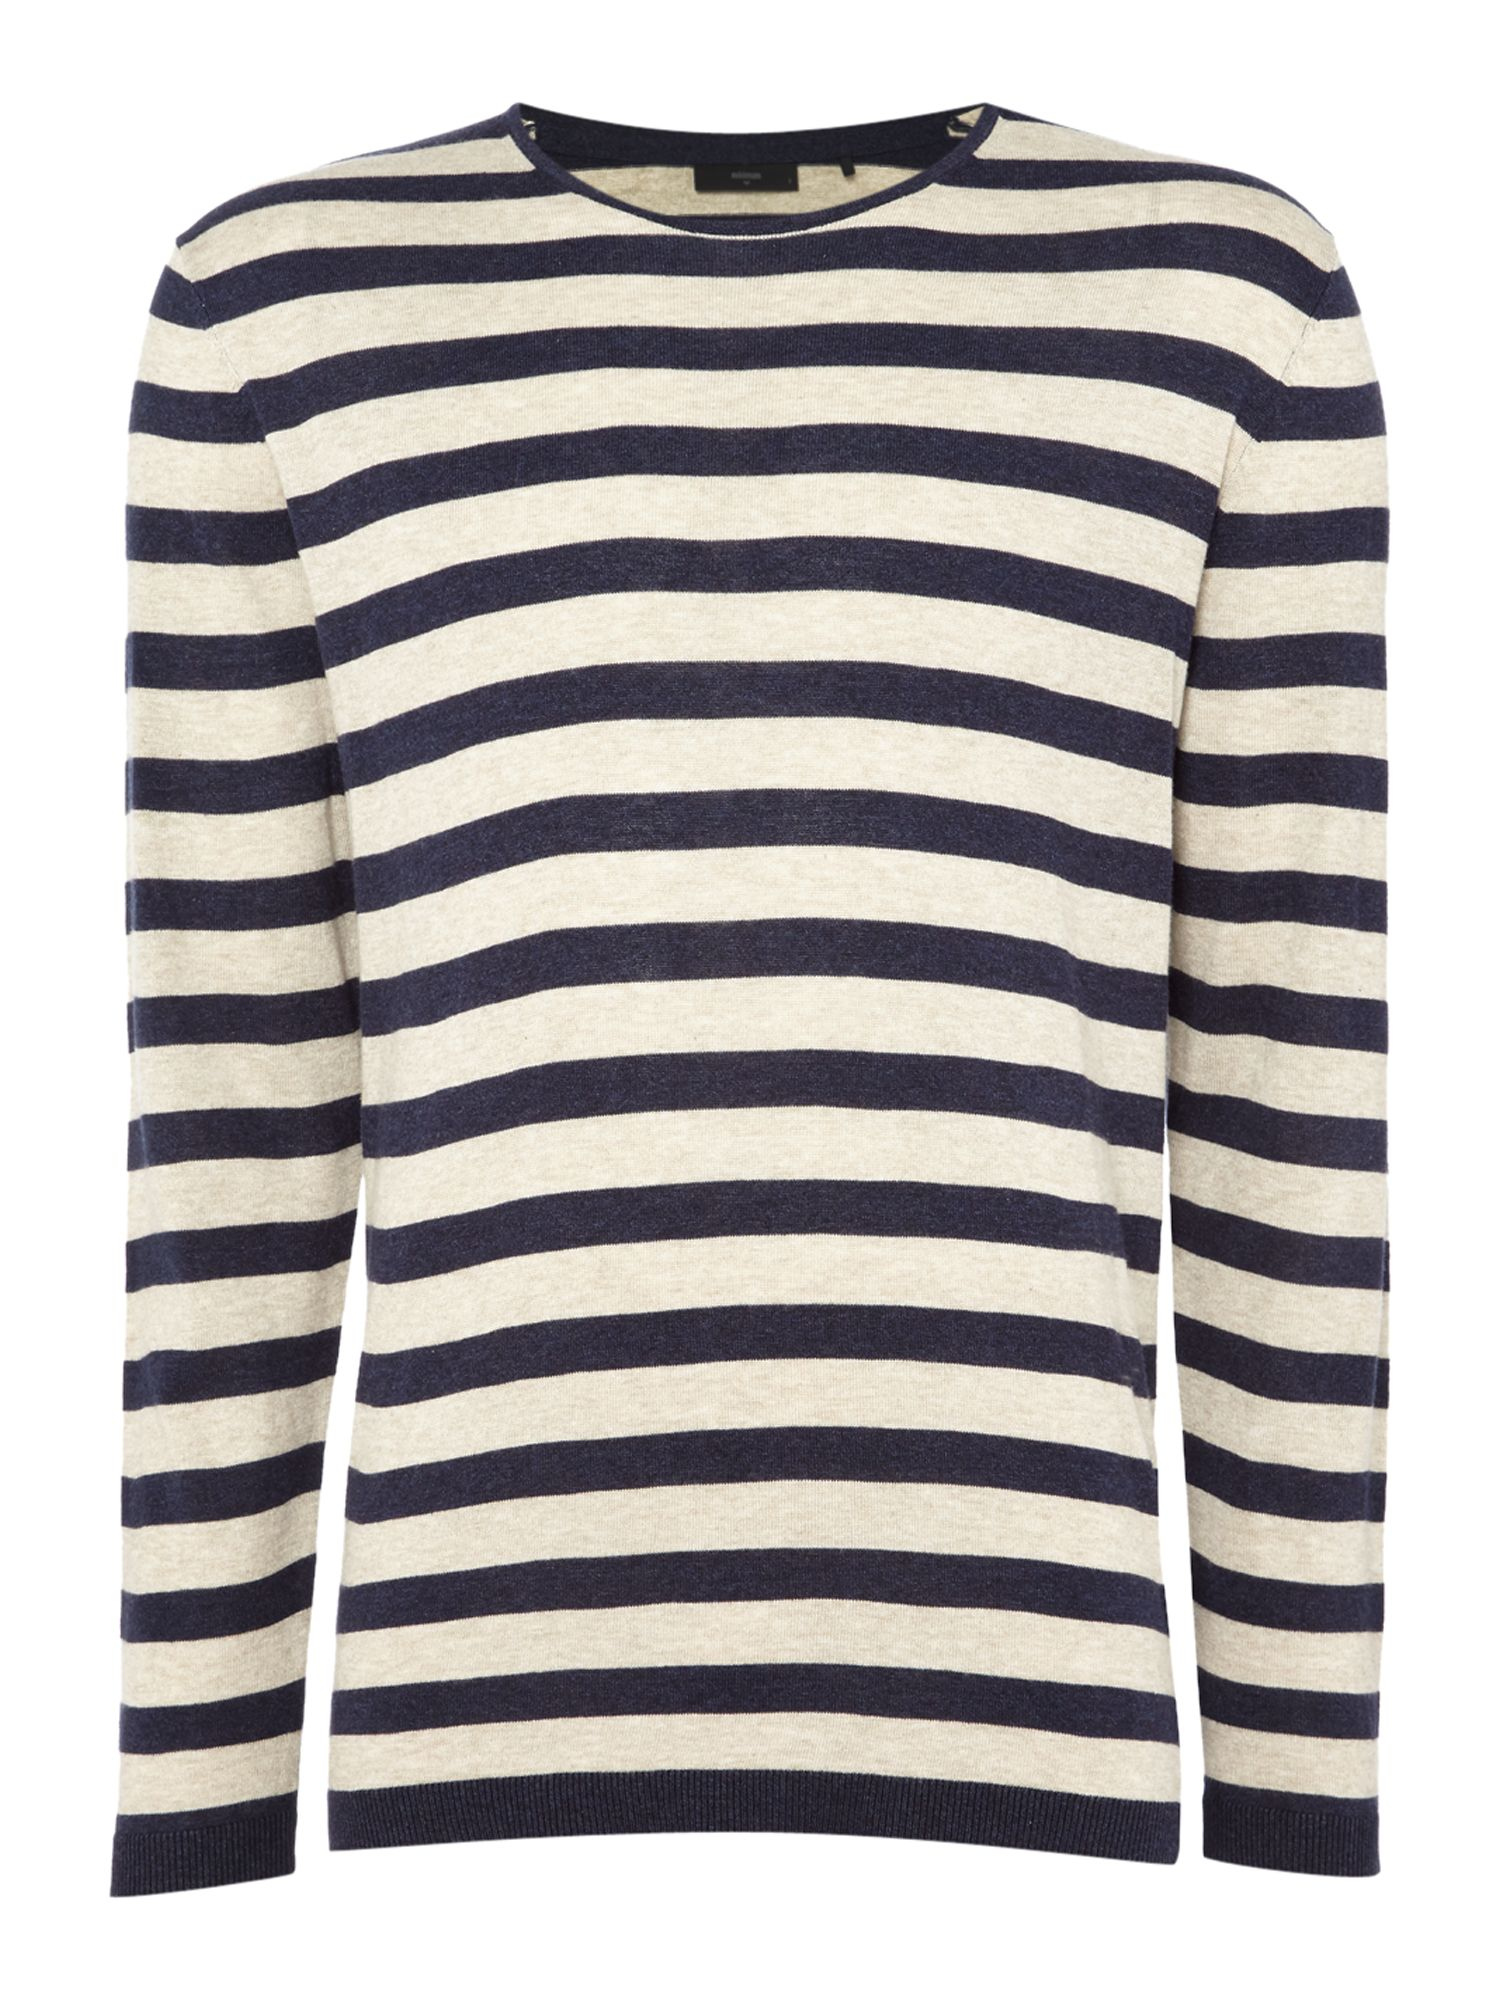 Men's Minimum Crew Neck Striped Jumper, Dark Blue